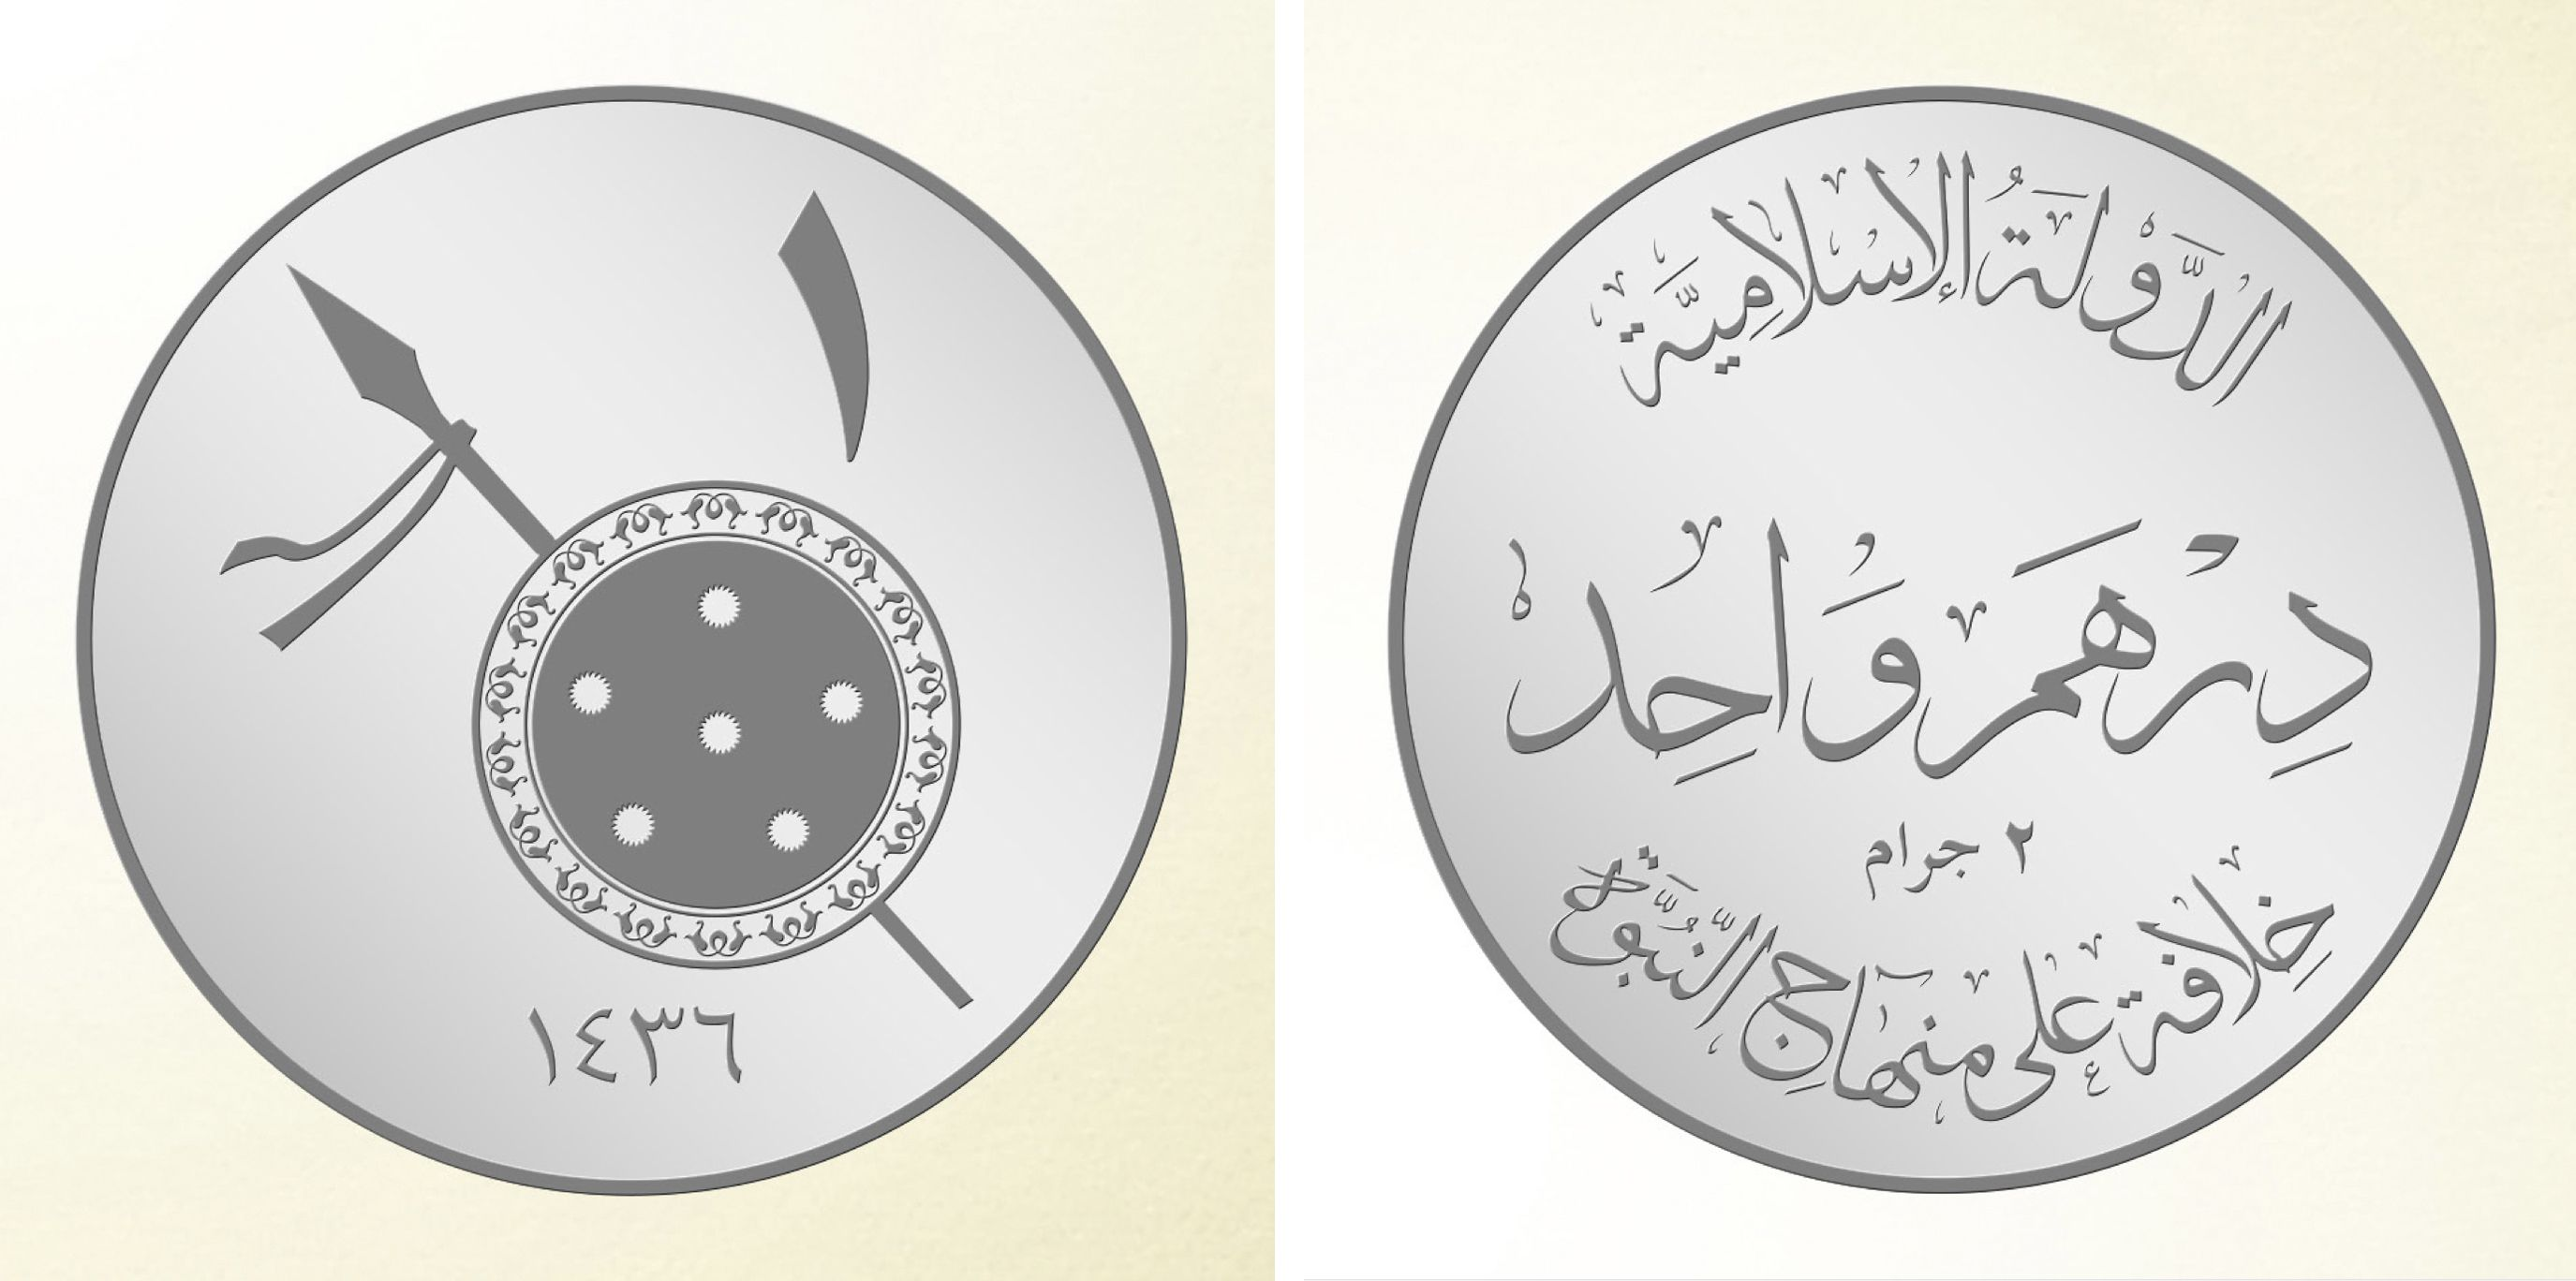 This image posted on a militant website on Thursday, Nov. 13, 2014, which has been verified and is consistent with other AP reporting, shows renderings of a 1 silver dirham coin, a new coin that Abu Bakr al-Baghdadi, the leader of the Islamic State group, ordered the group to start minting for its own currency - the Islamic dinar. The Arabic on the left image shows 1 for the first line and 1436 (Islamic year) for the second. The Arabic on the right image shows the Islamic State for the first line, 1 dirham (smaller denomination of the dinar) for the second line, 2 grams for the third line and A Caliphate Based on the Doctrine of the Prophet for the fourth line. (AP Photo/Militant website)